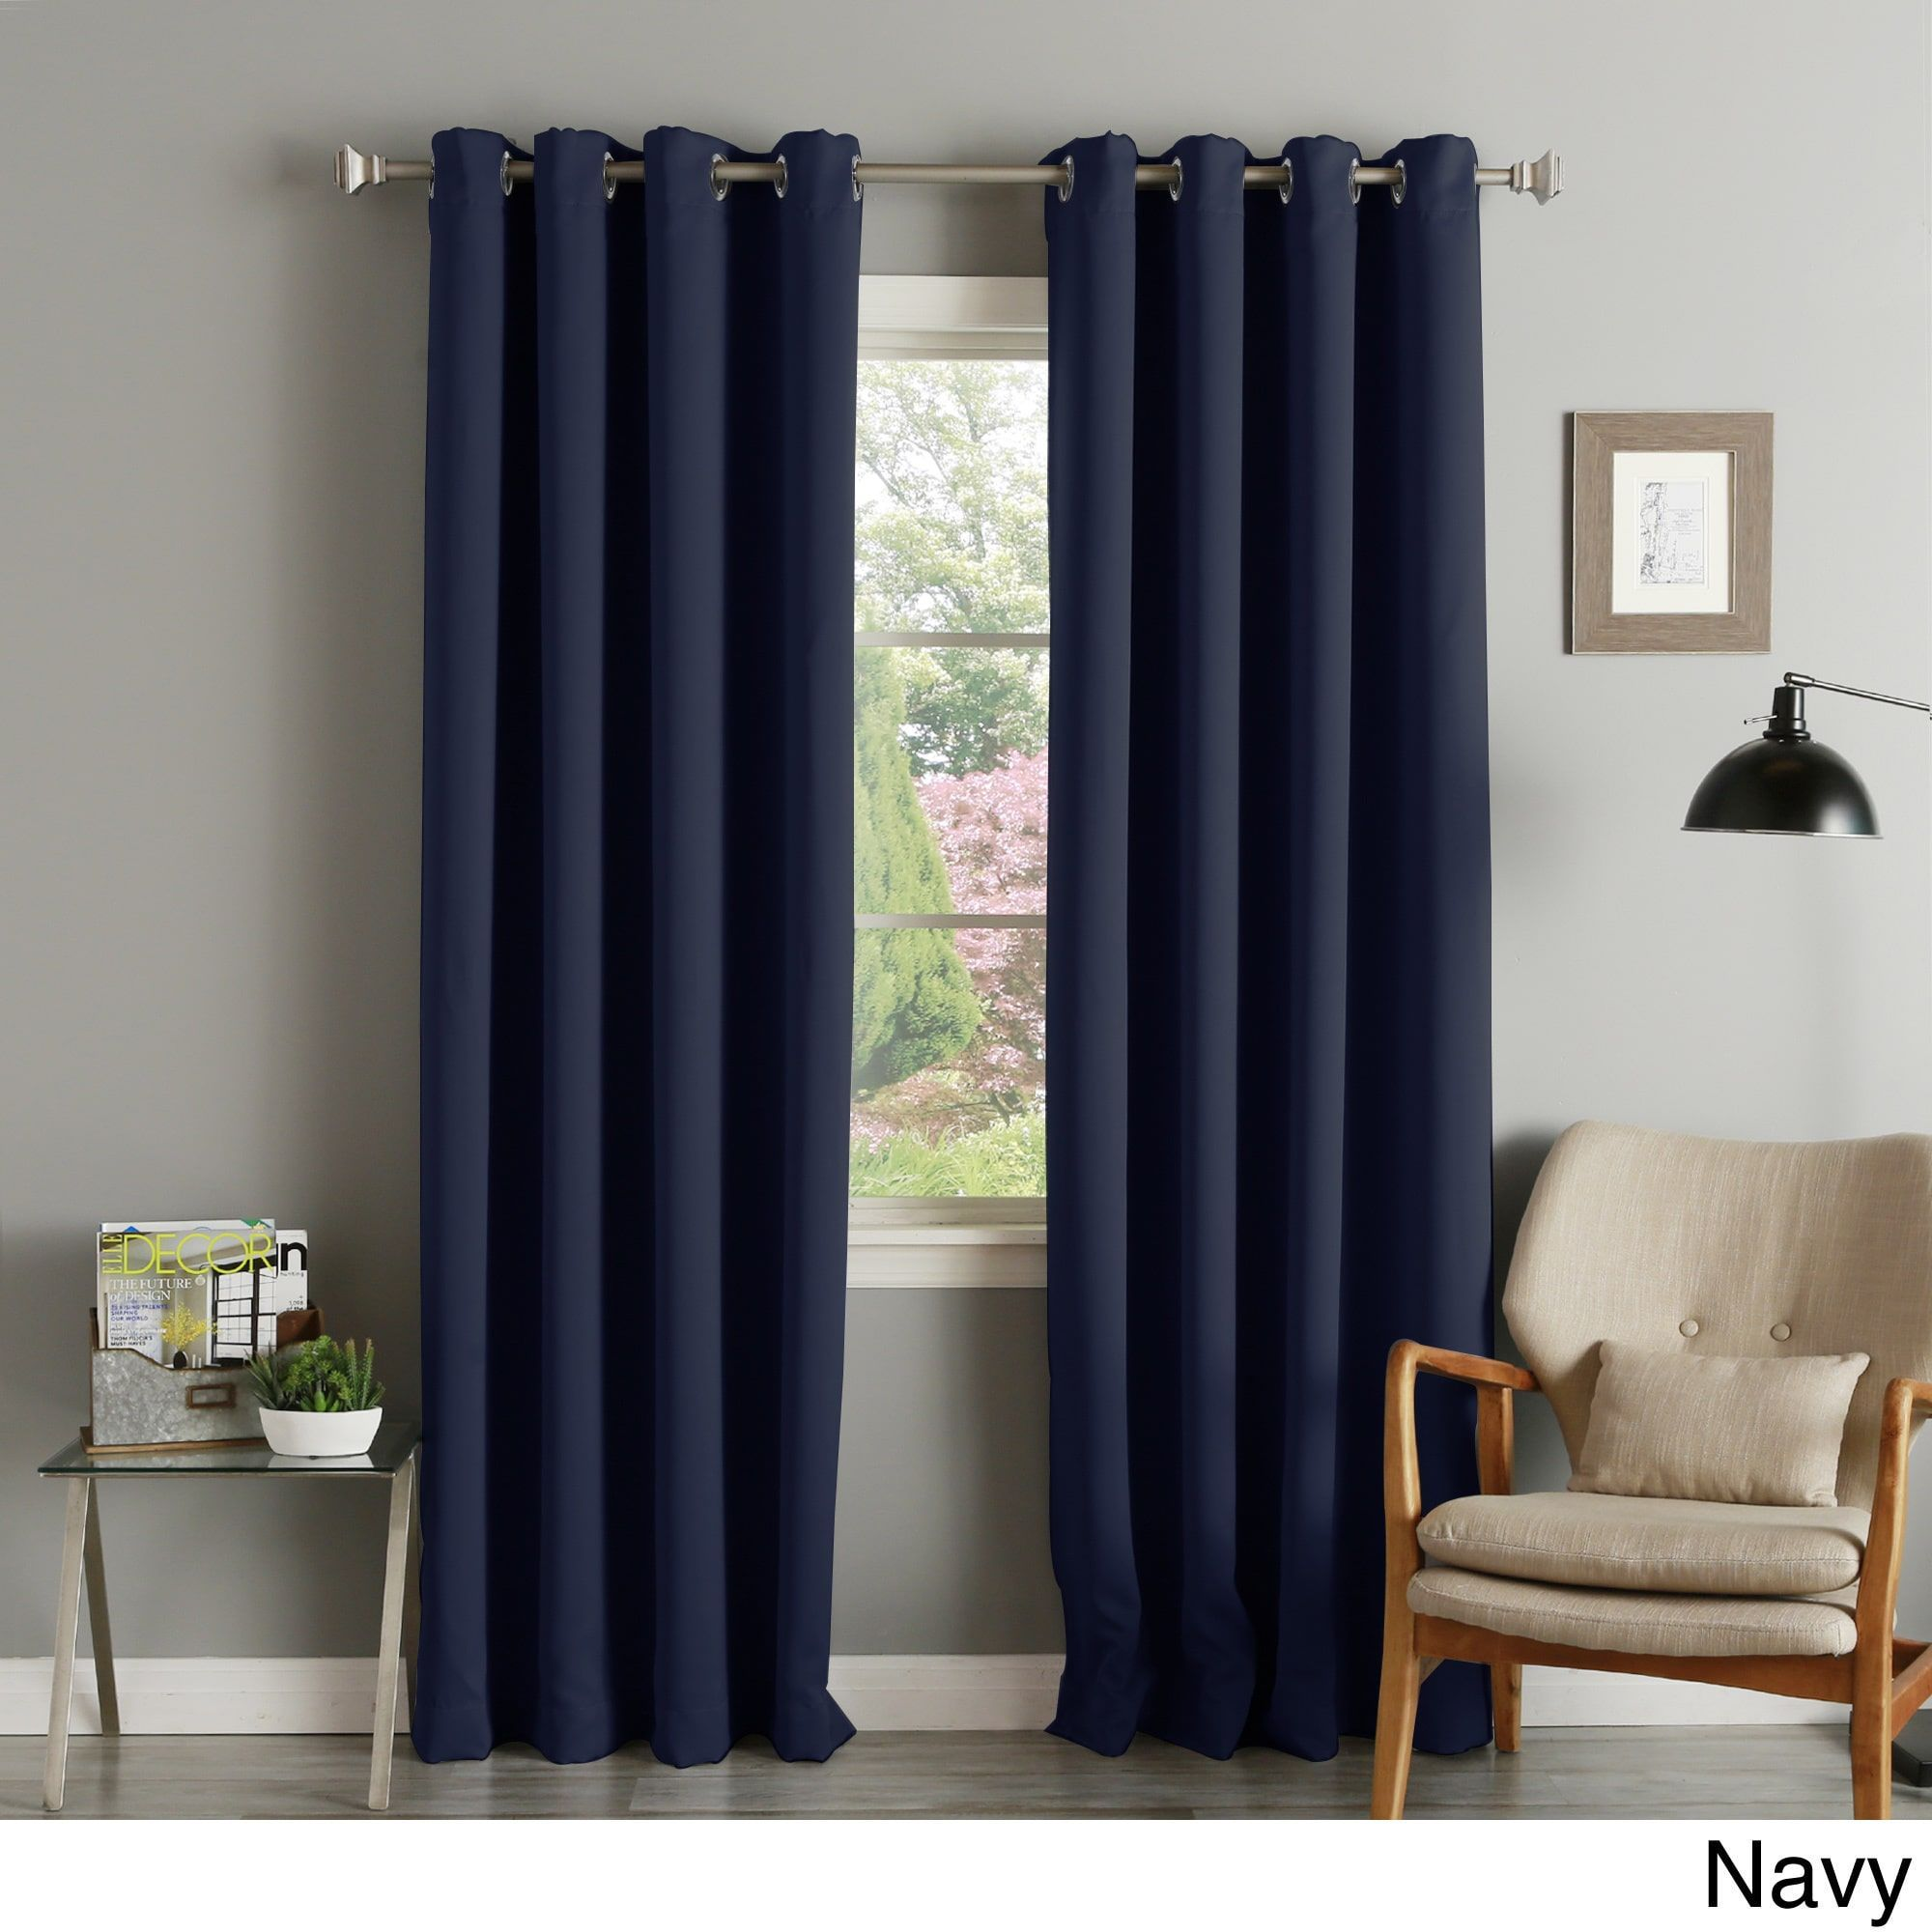 Curtain pair overstock shopping great deals on lights out curtains - Aurora Home Silver Grommet Top Thermal Insulated 108 Inch Blackout Curtain Panel Pair Navy